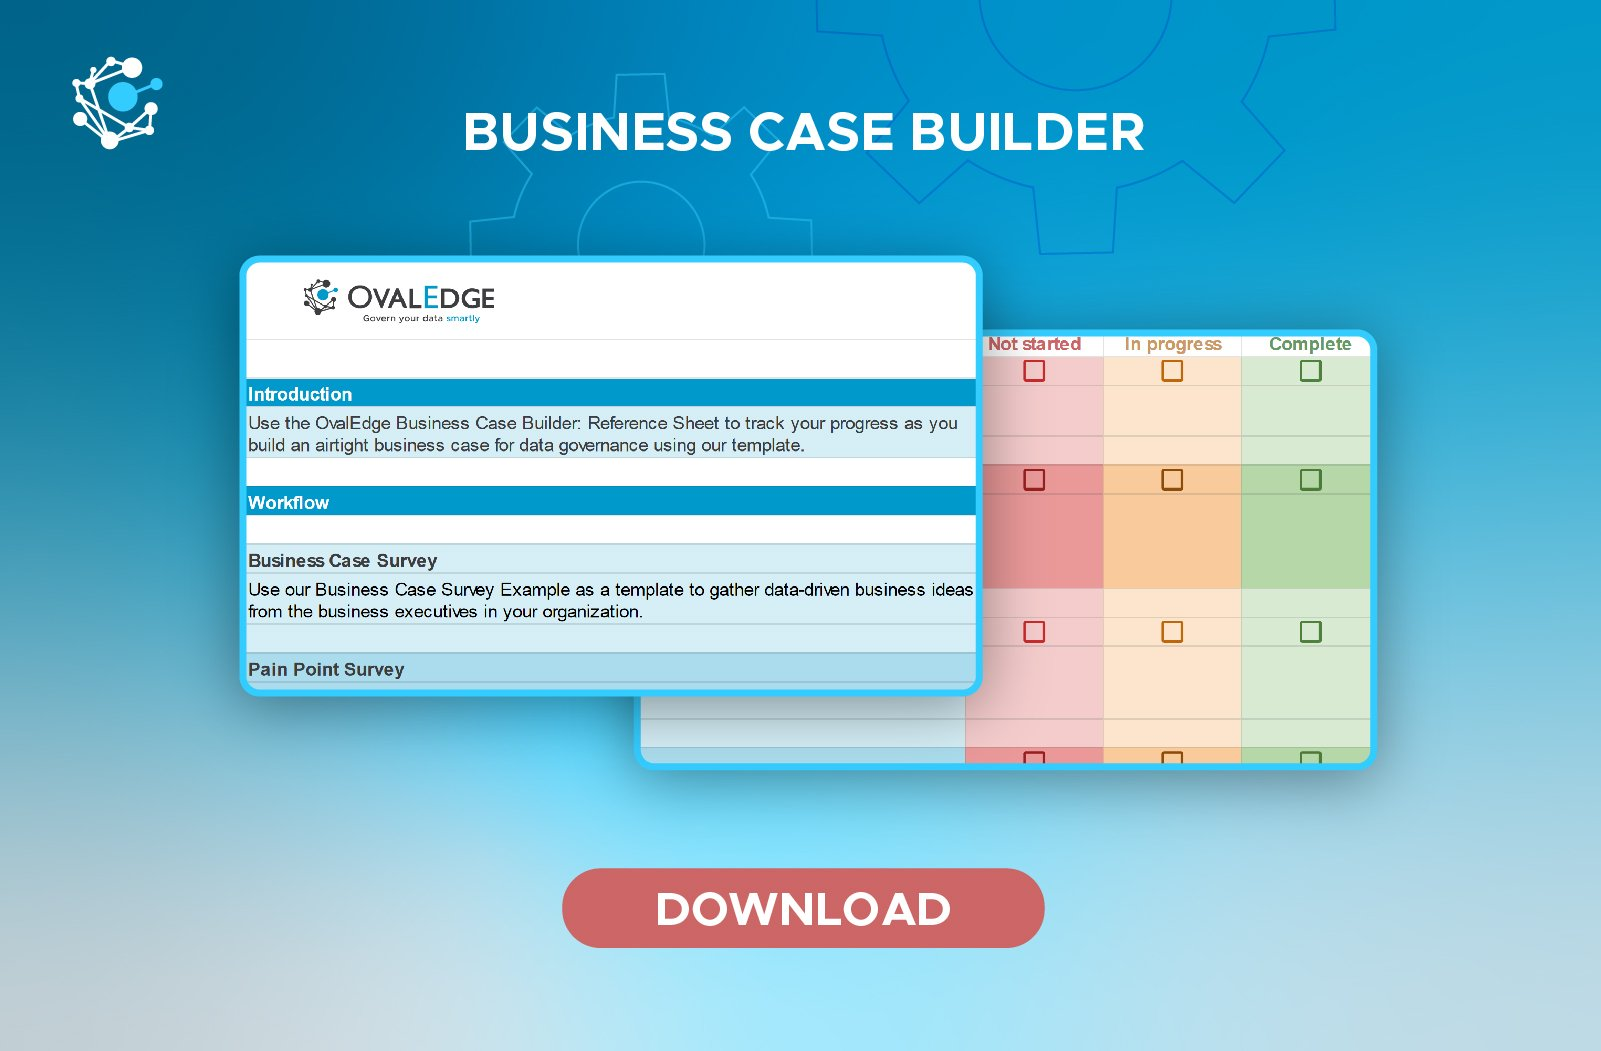 How to build a business case for data governance